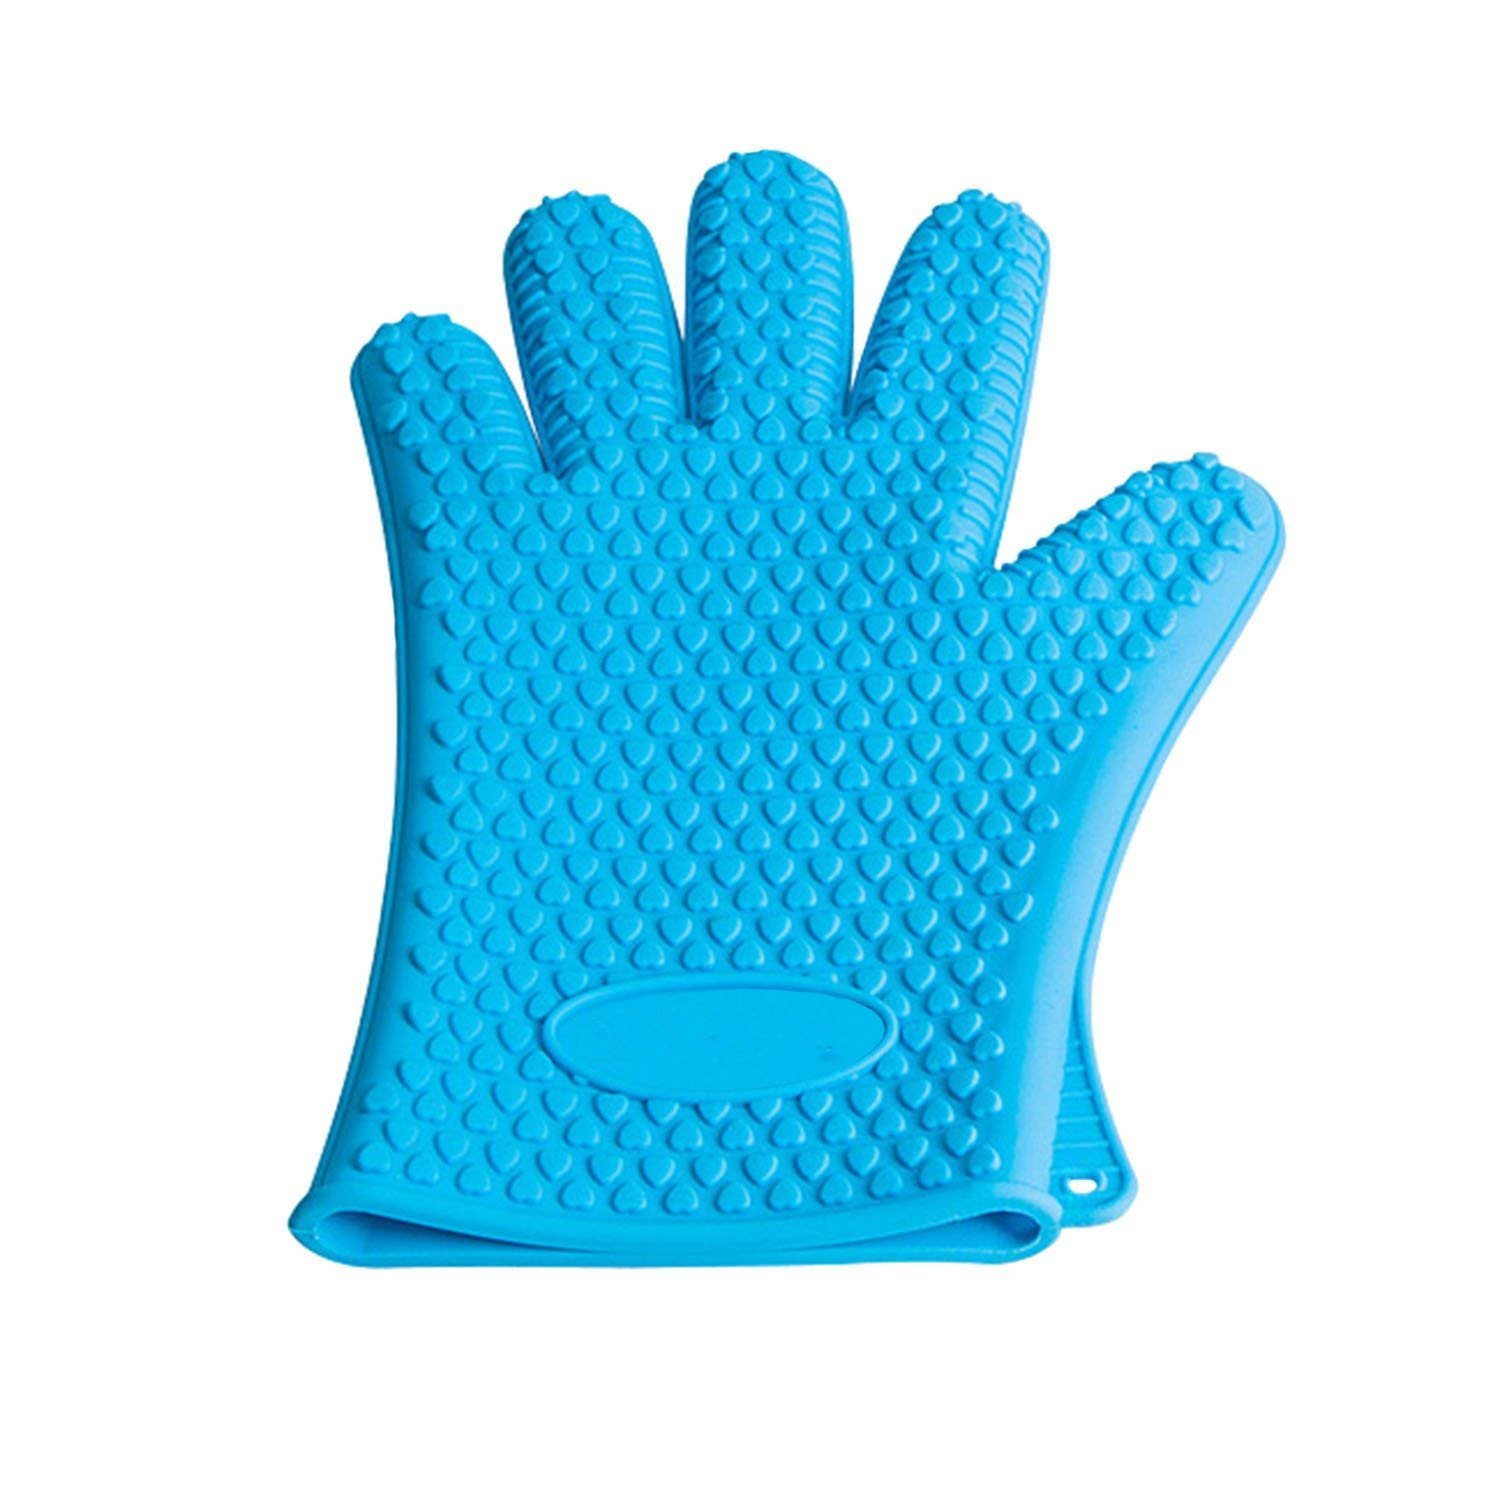 Silicone BBQ Gloves - Oceom Best Heat Resistant Non-slip Oven Mitts For Cooking, Baking, BBQ, Oven, Microwave, Frying, Freezer, Kitchen 1PC (Blue)